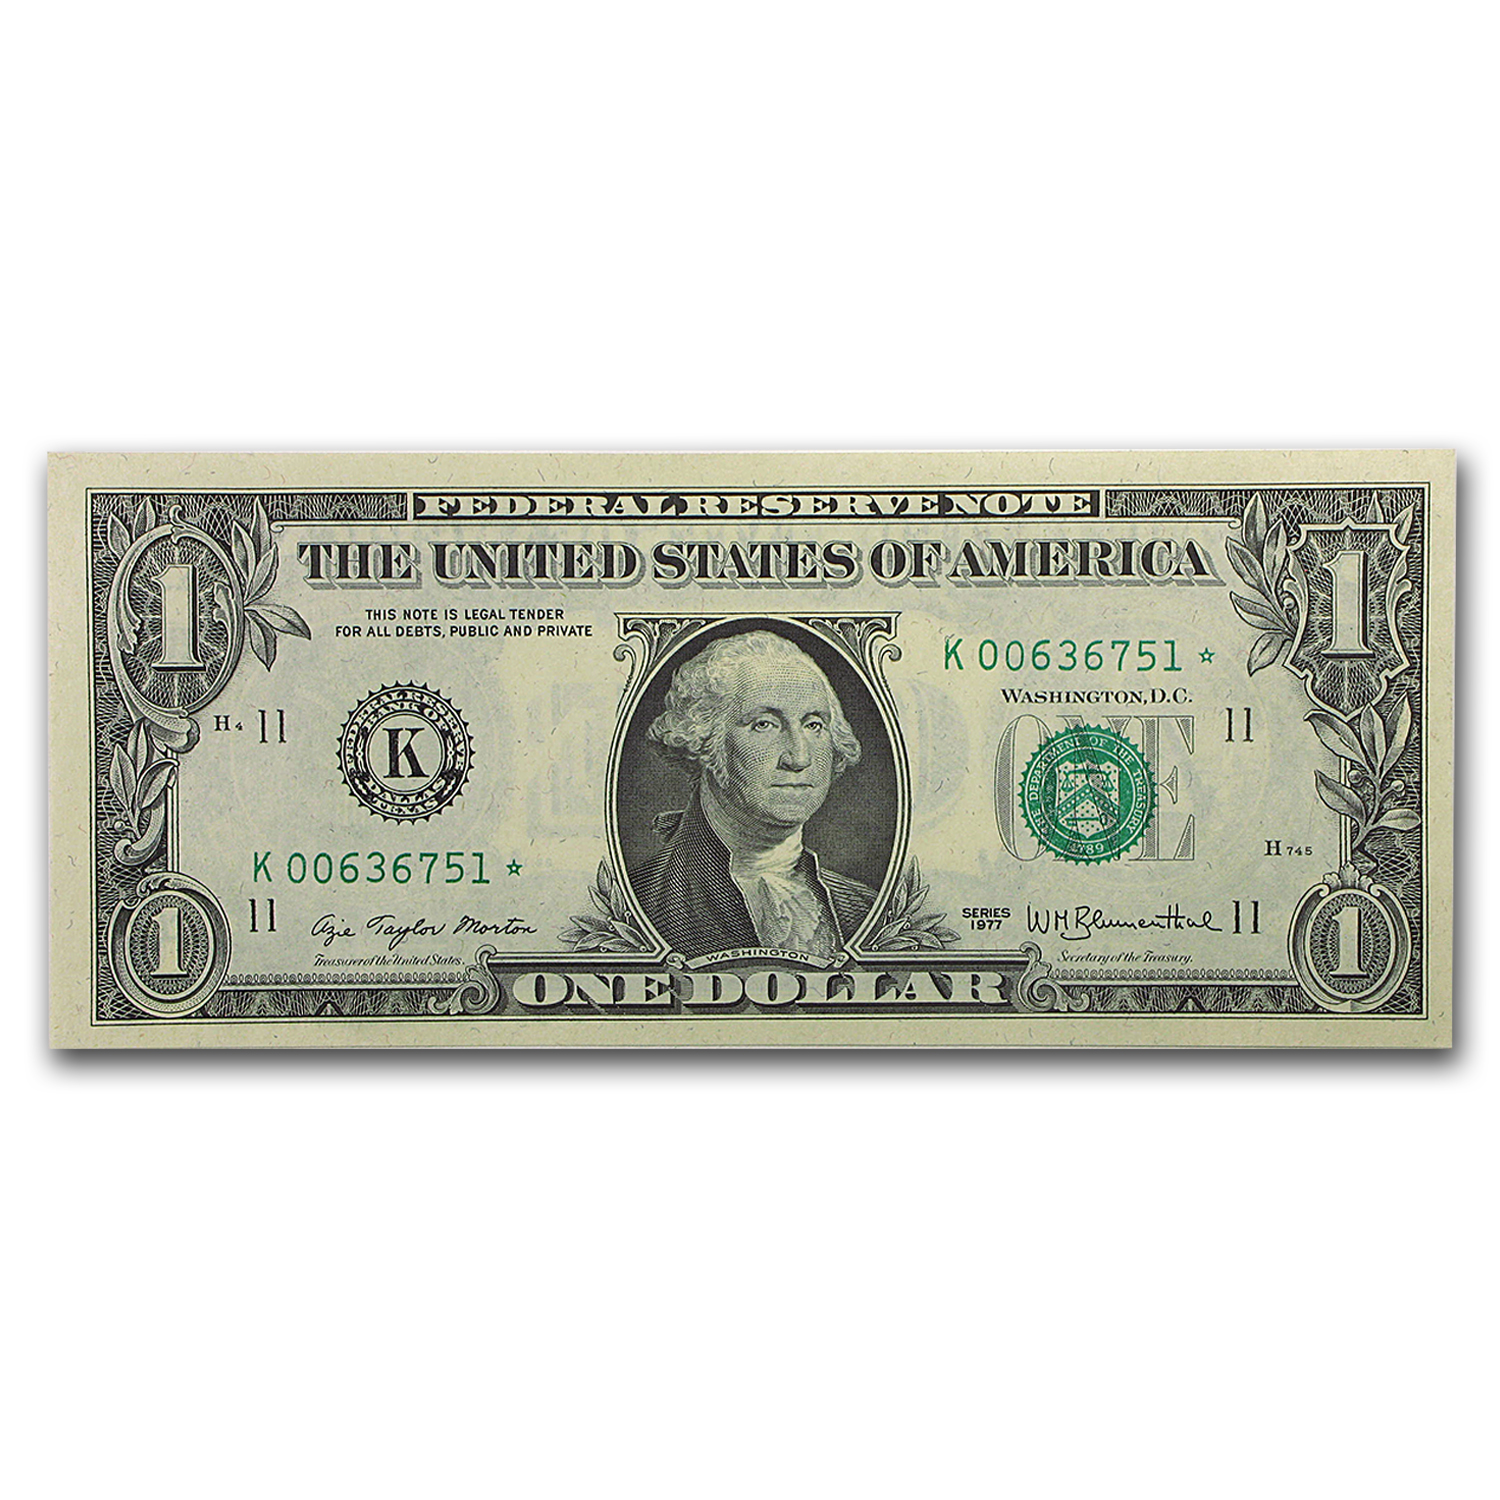 1977* (K-Dallas) $1.00 FRN CU (Star Note)